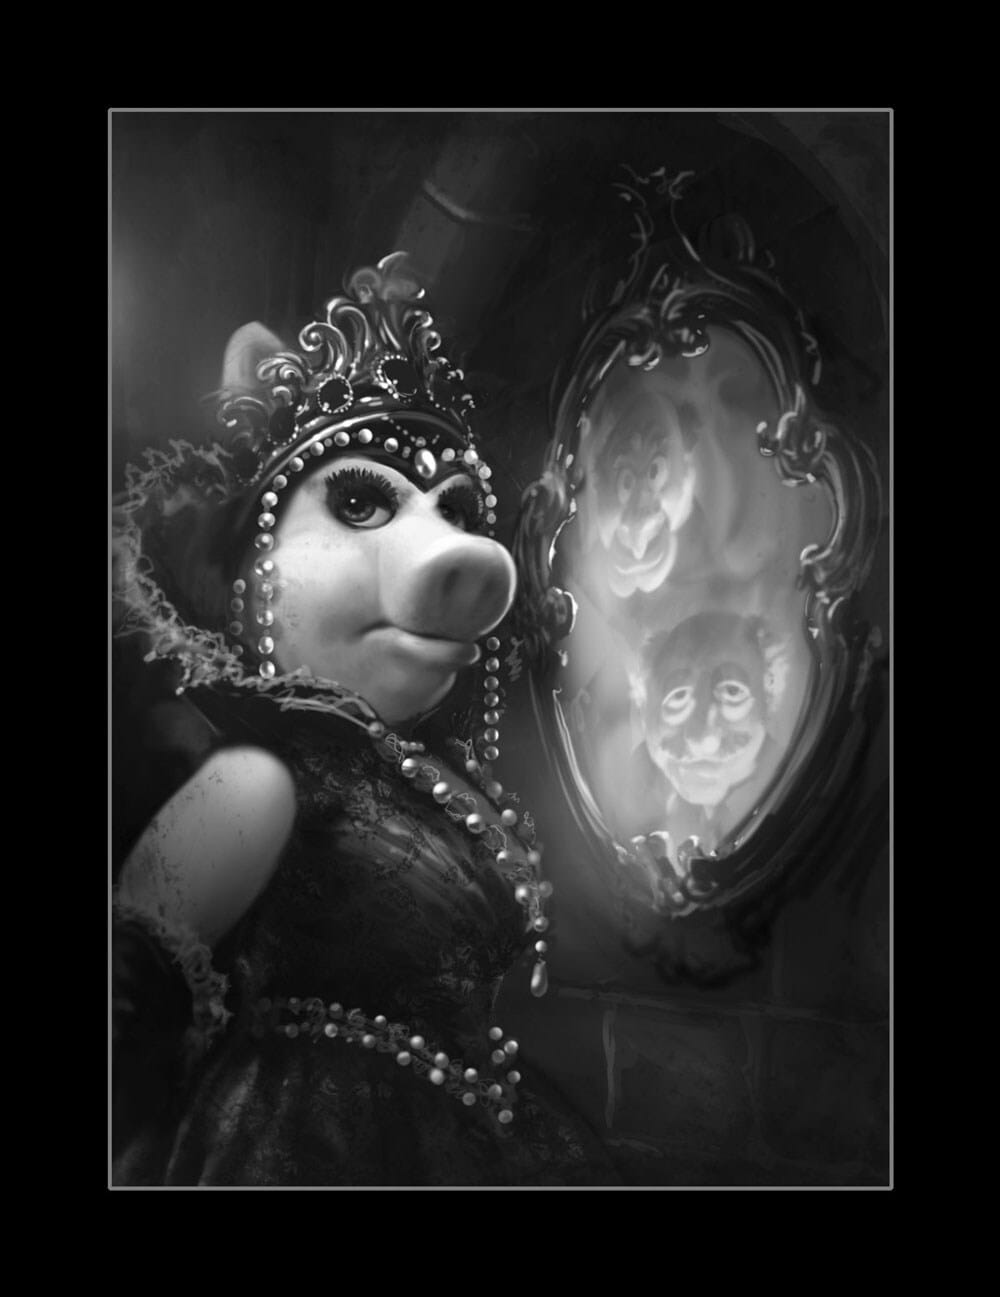 Black and white illustration of Miss Piggy as the Evil Queen and Statler & Waldorf as the Magic Mirror